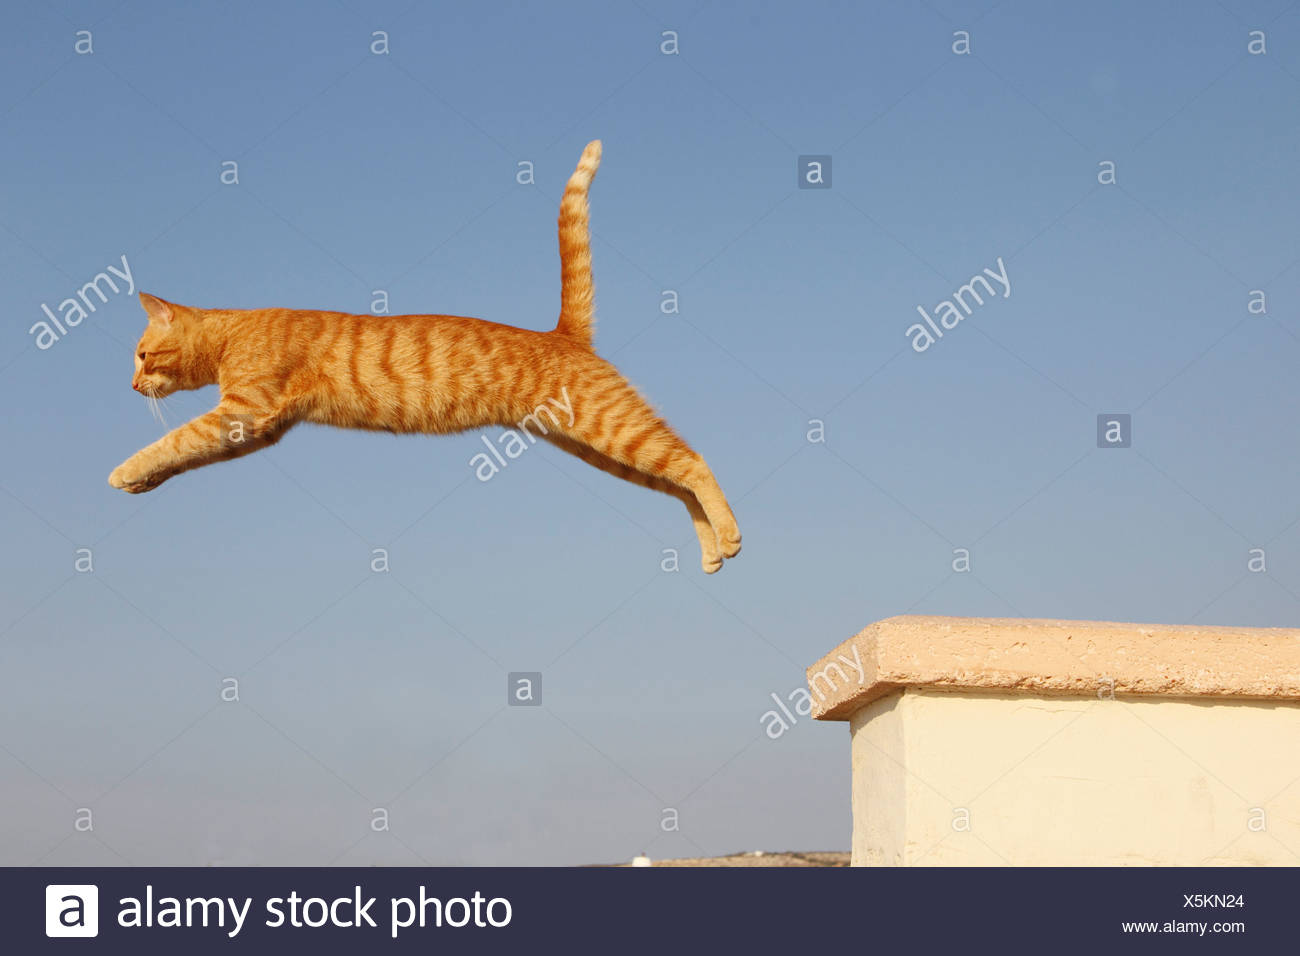 domestic cat - jumping - Stock Image